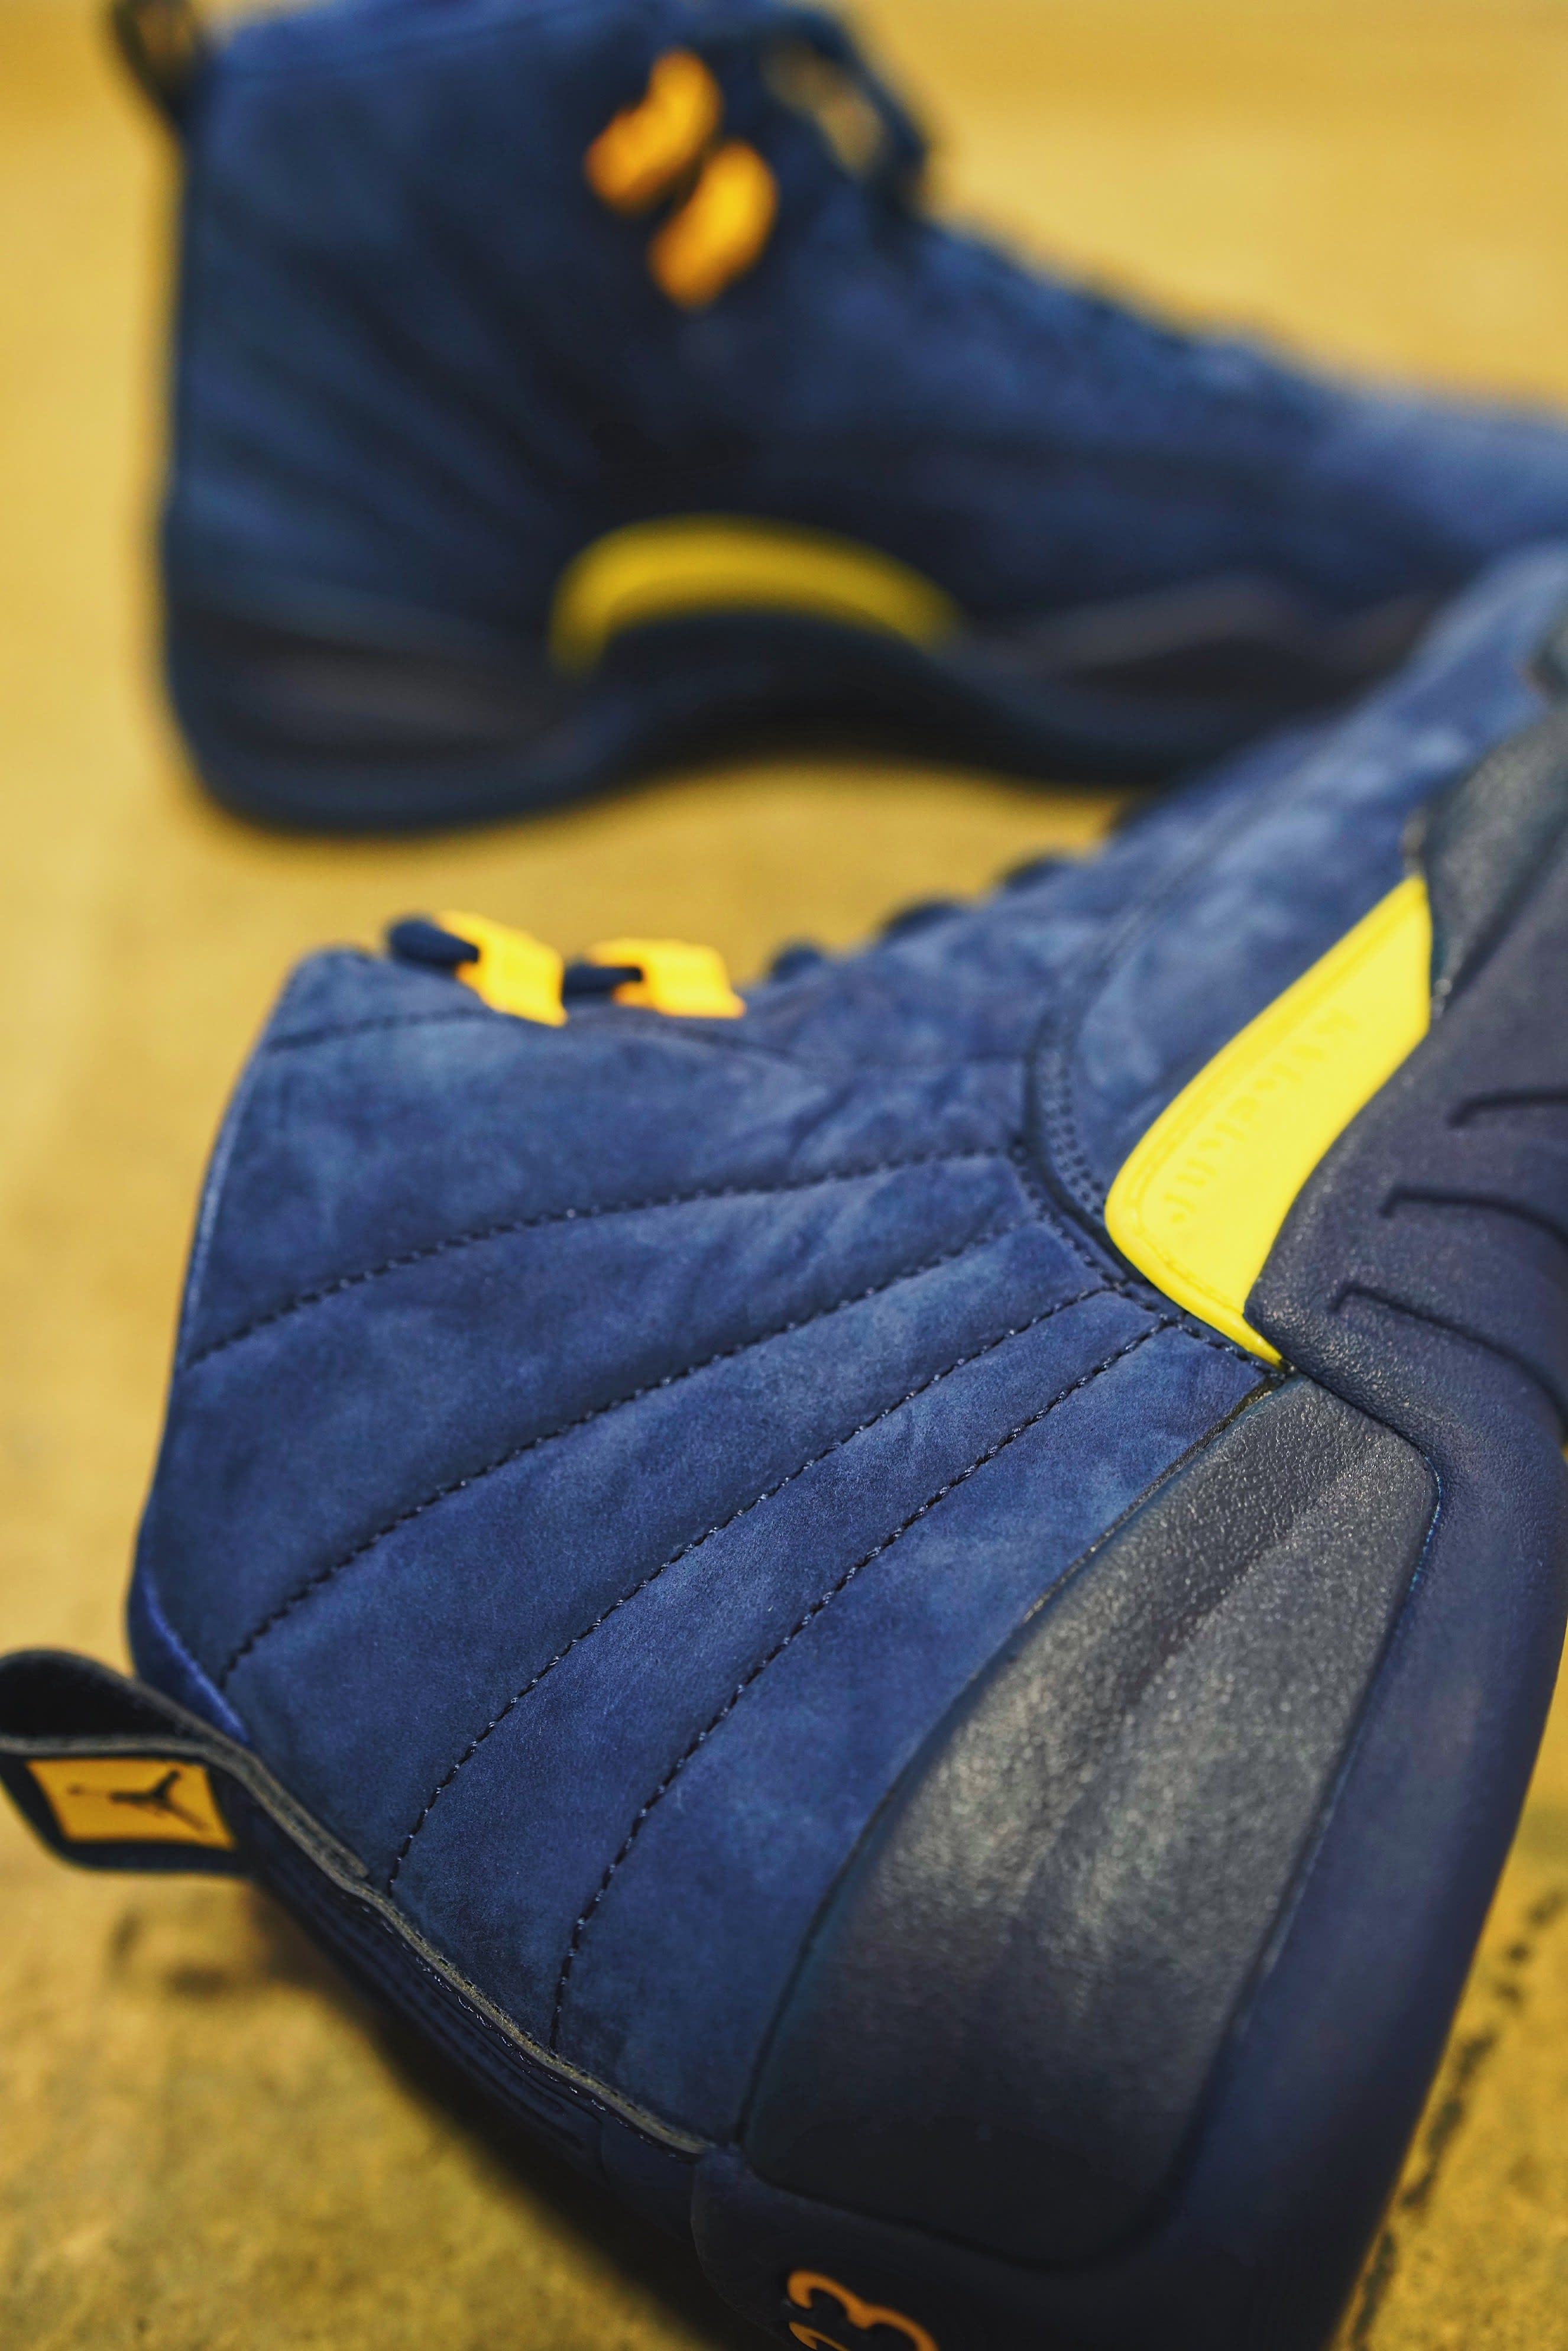 Air Jordan 12 'Michigan' BQ3180-407 (Detail)